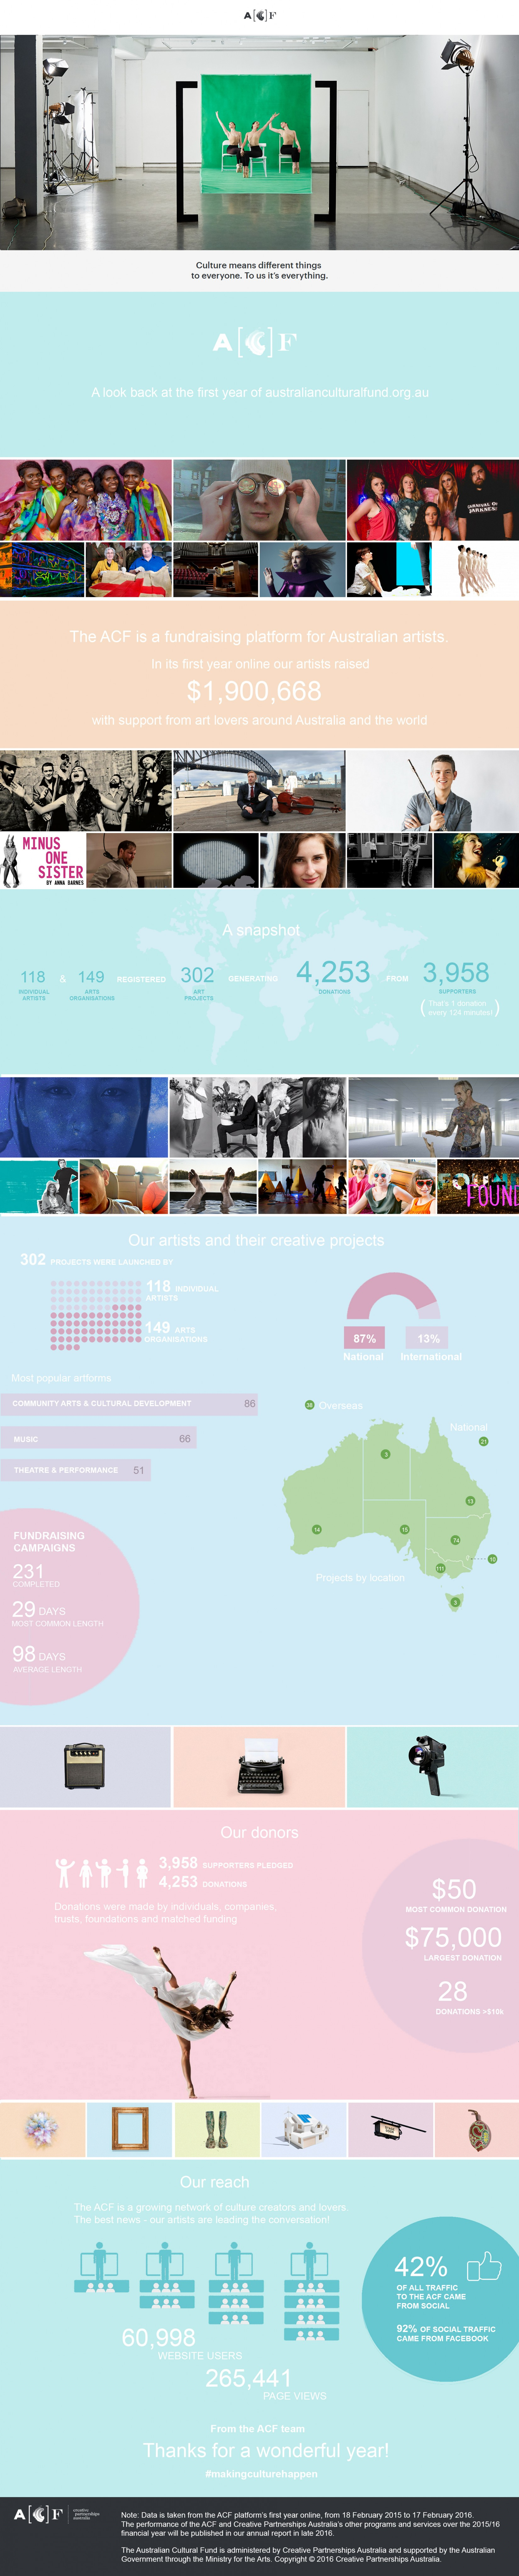 acfyir_infographic_our-first-year-in-numbers-final